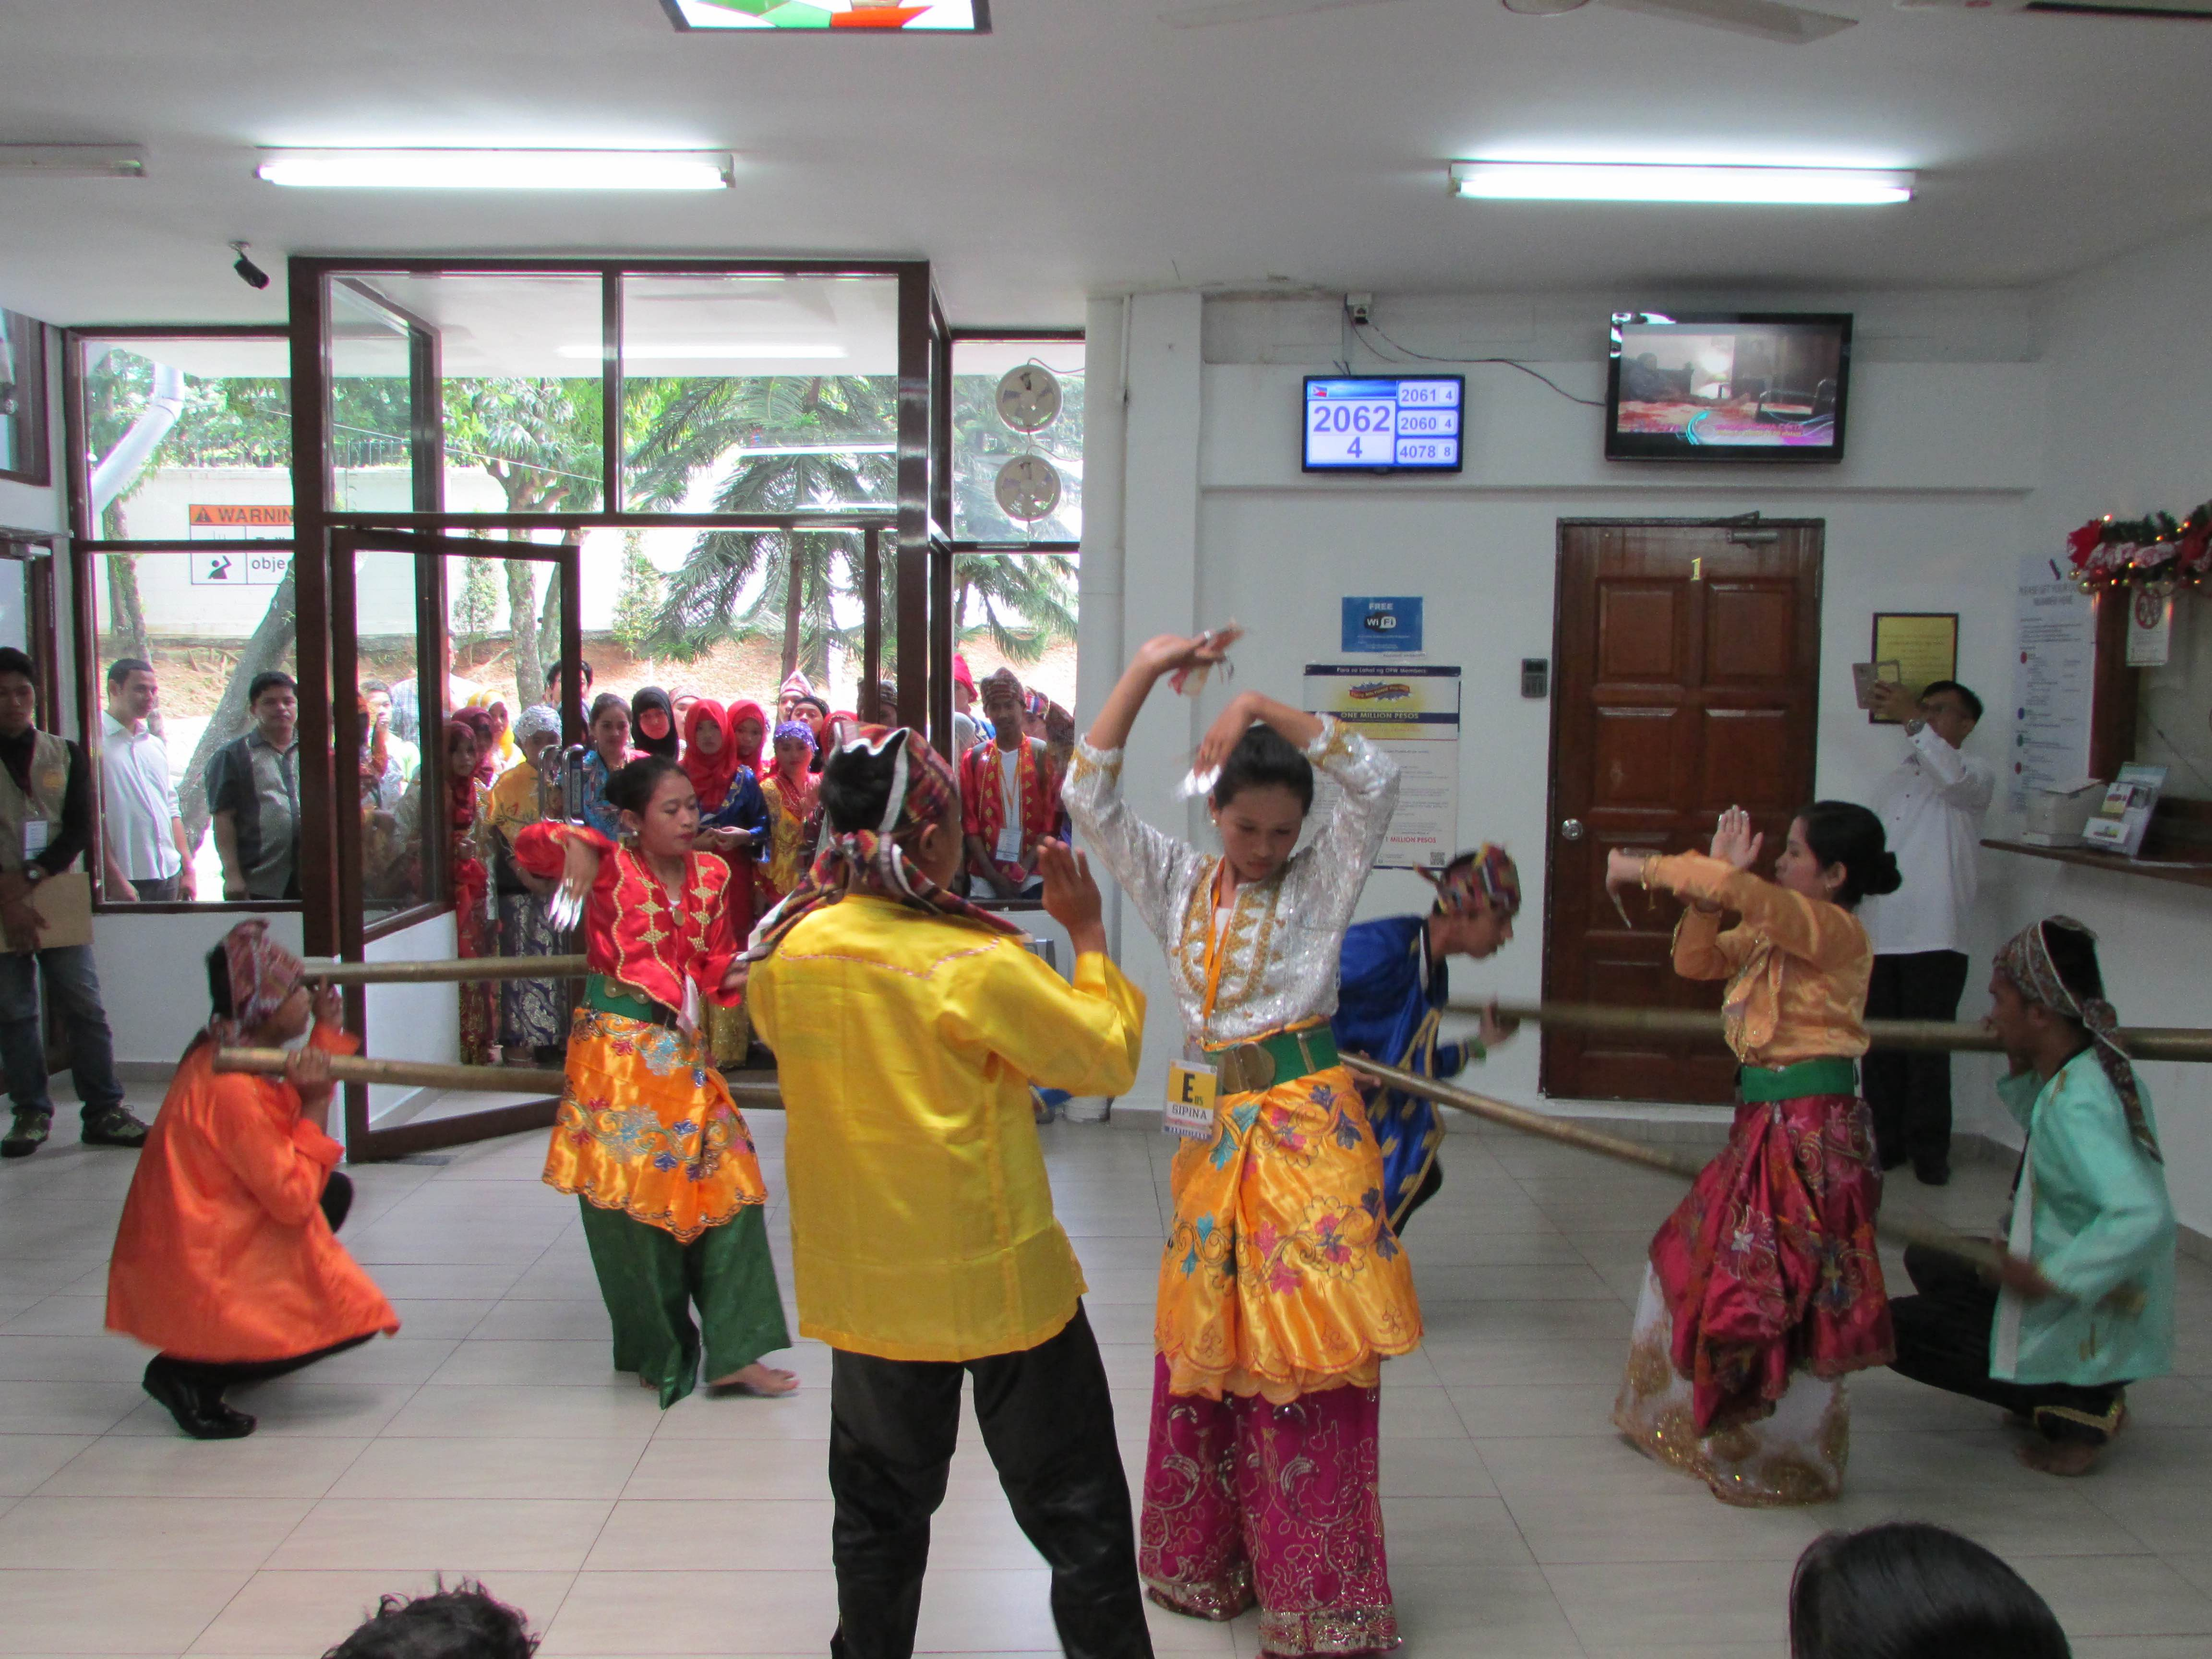 CULTURAL PERFORMANCE. Sulu Youth Leaders perform a traditional dance at the consular section of the Philippine Embassy, much to the delight of Filipinos applying for passports and other consular services. Photo from the Philippine Embassy in Kuala Lumpur